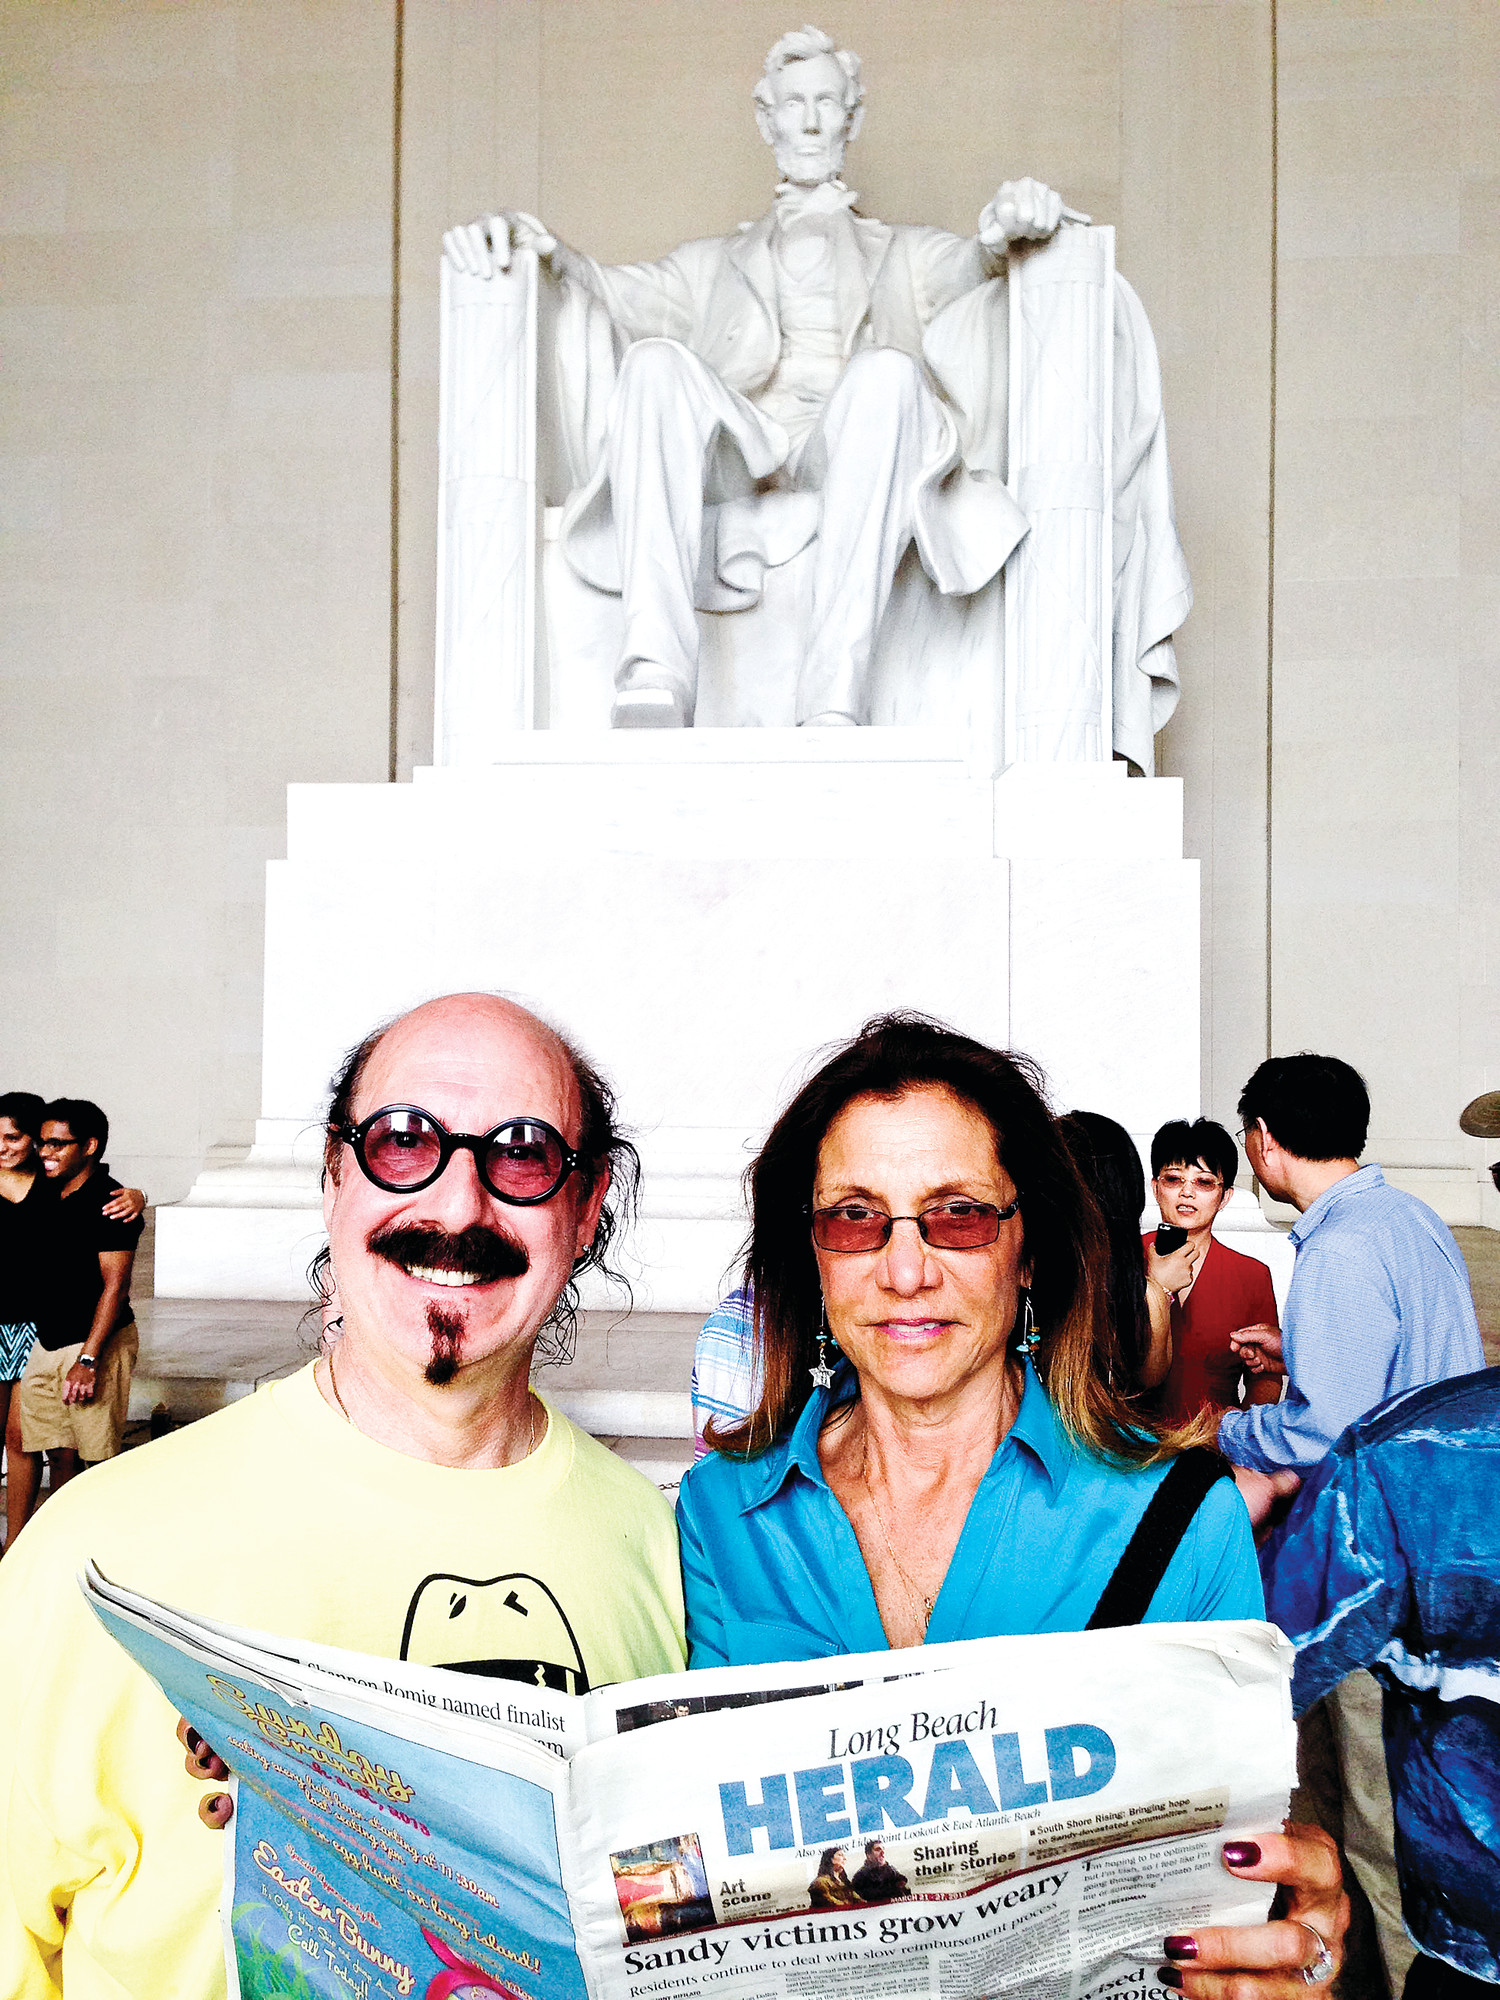 At the Lincoln Memorial � Washington, D.C.